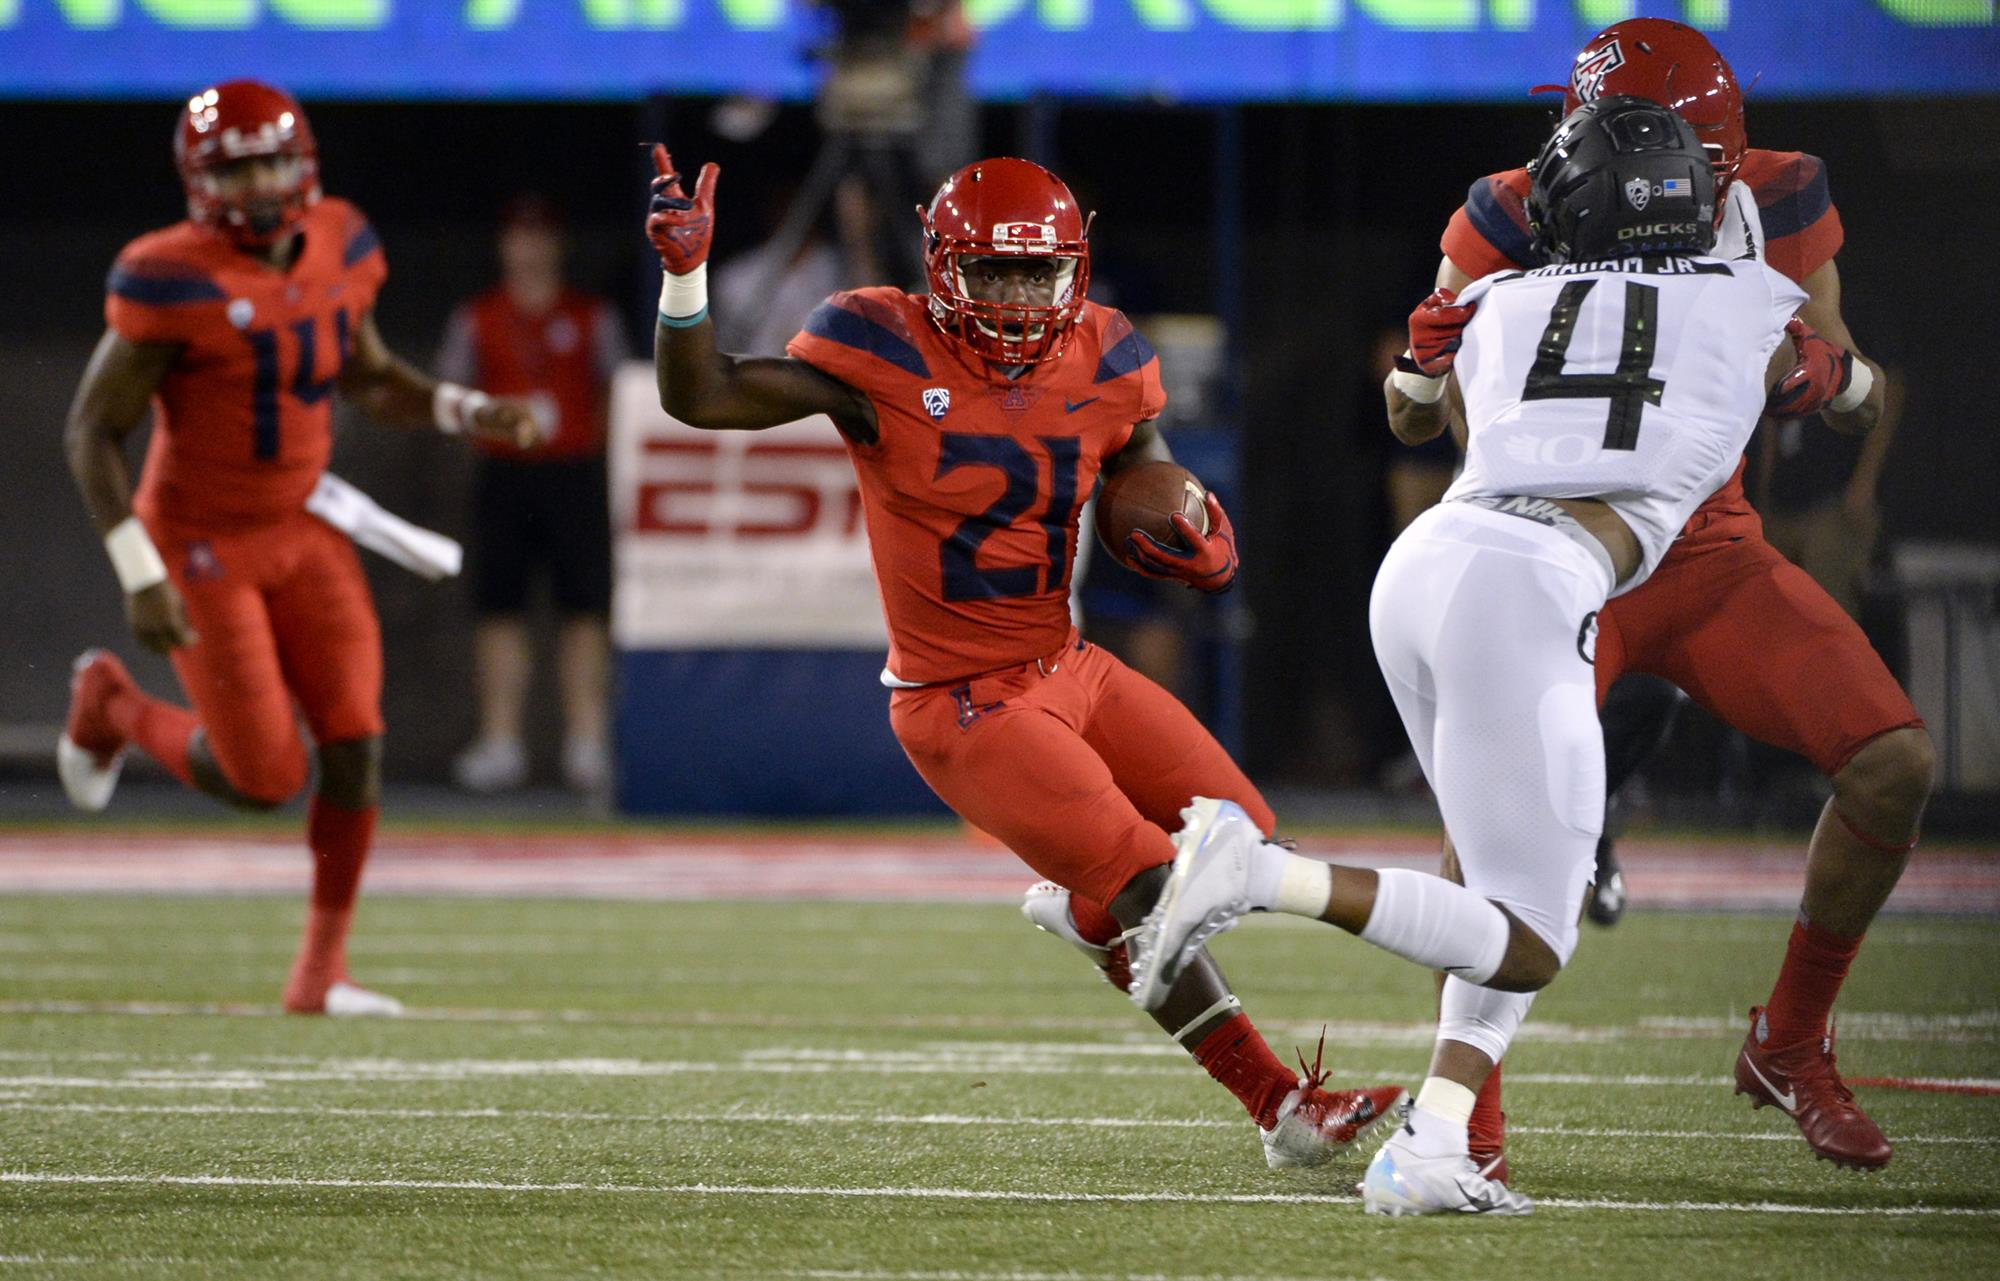 Uofa Football Score >> Oregon Ducks Vs Arizona Wildcats Football October 27 2018